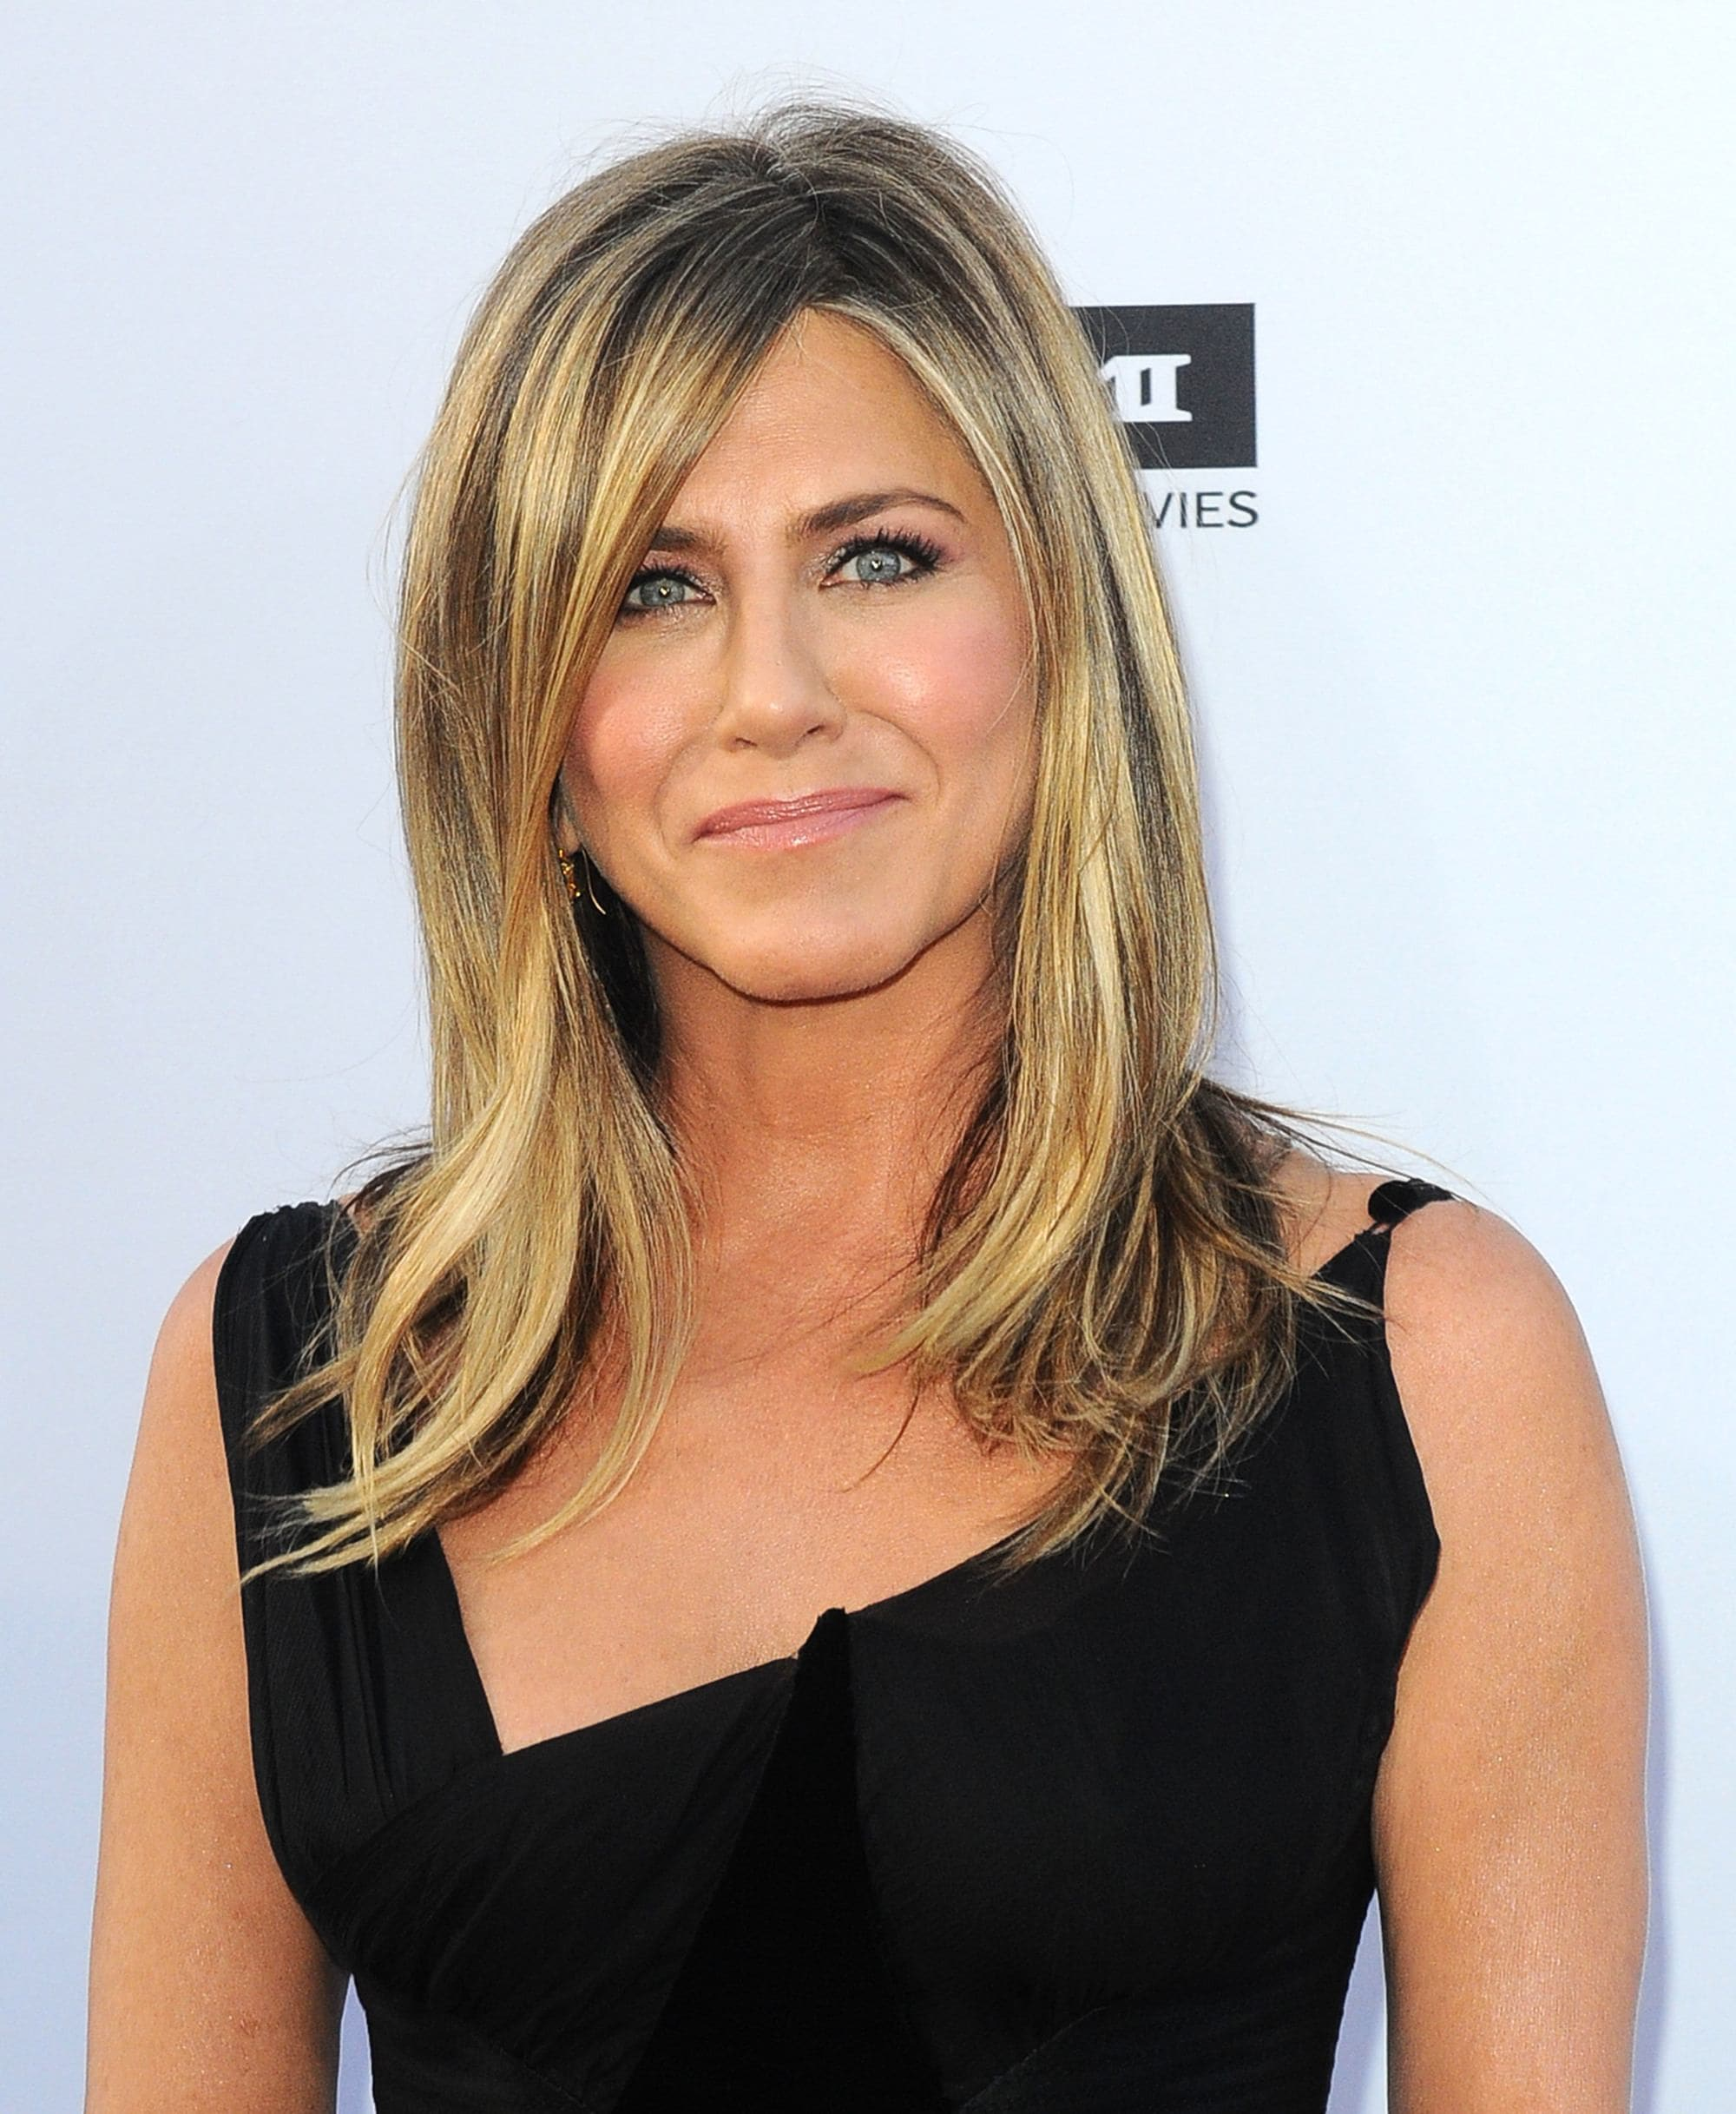 Shoulder length layered hair: Jennifer Aniston with mid-length blonde hair with a side fringe and layers